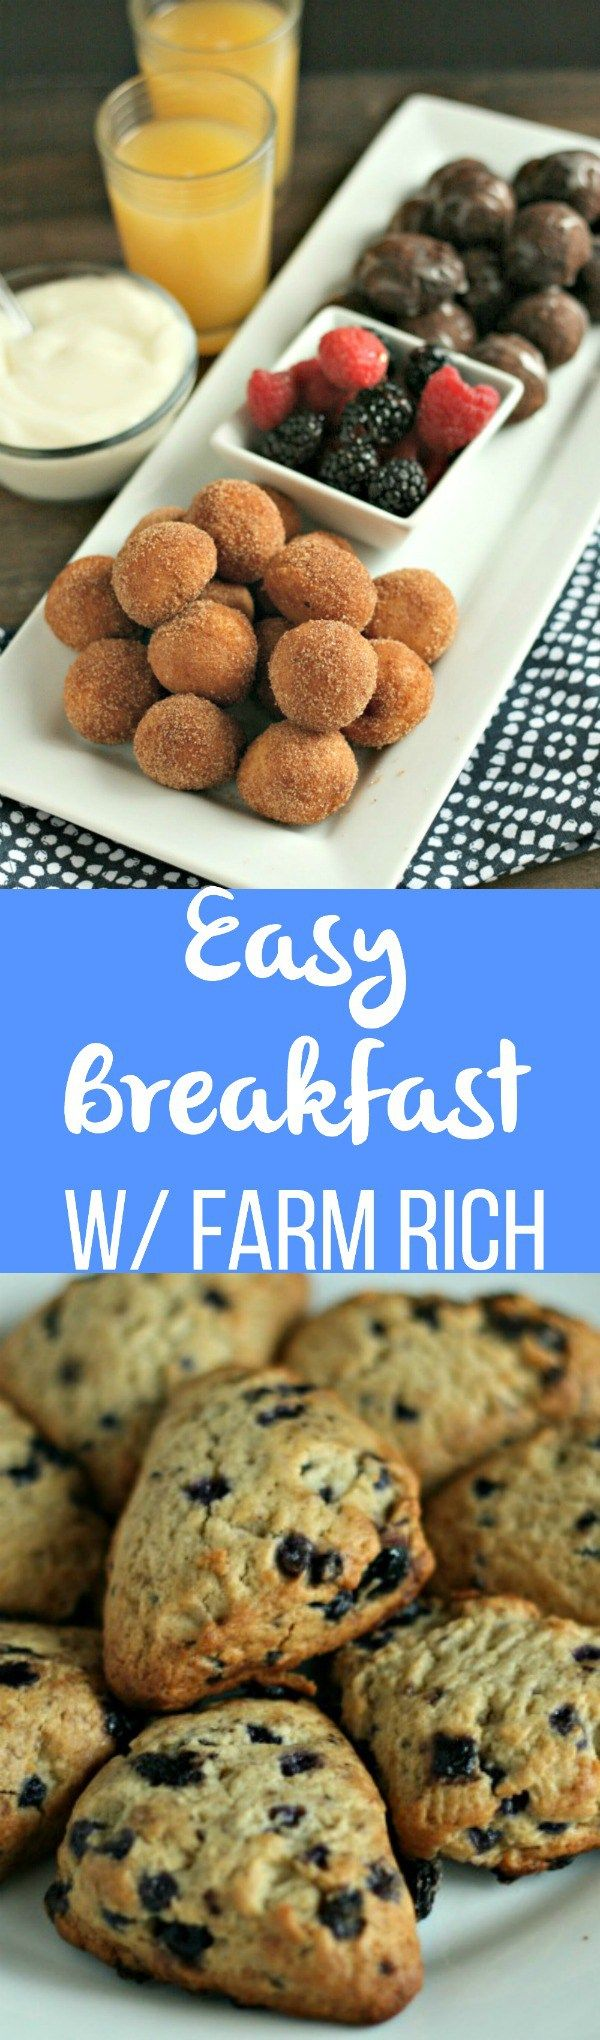 Simplify breakfast with ready-to-make Donut Holes, Blueberry Scones and more all found in the freezer section! #FarmRichBakery